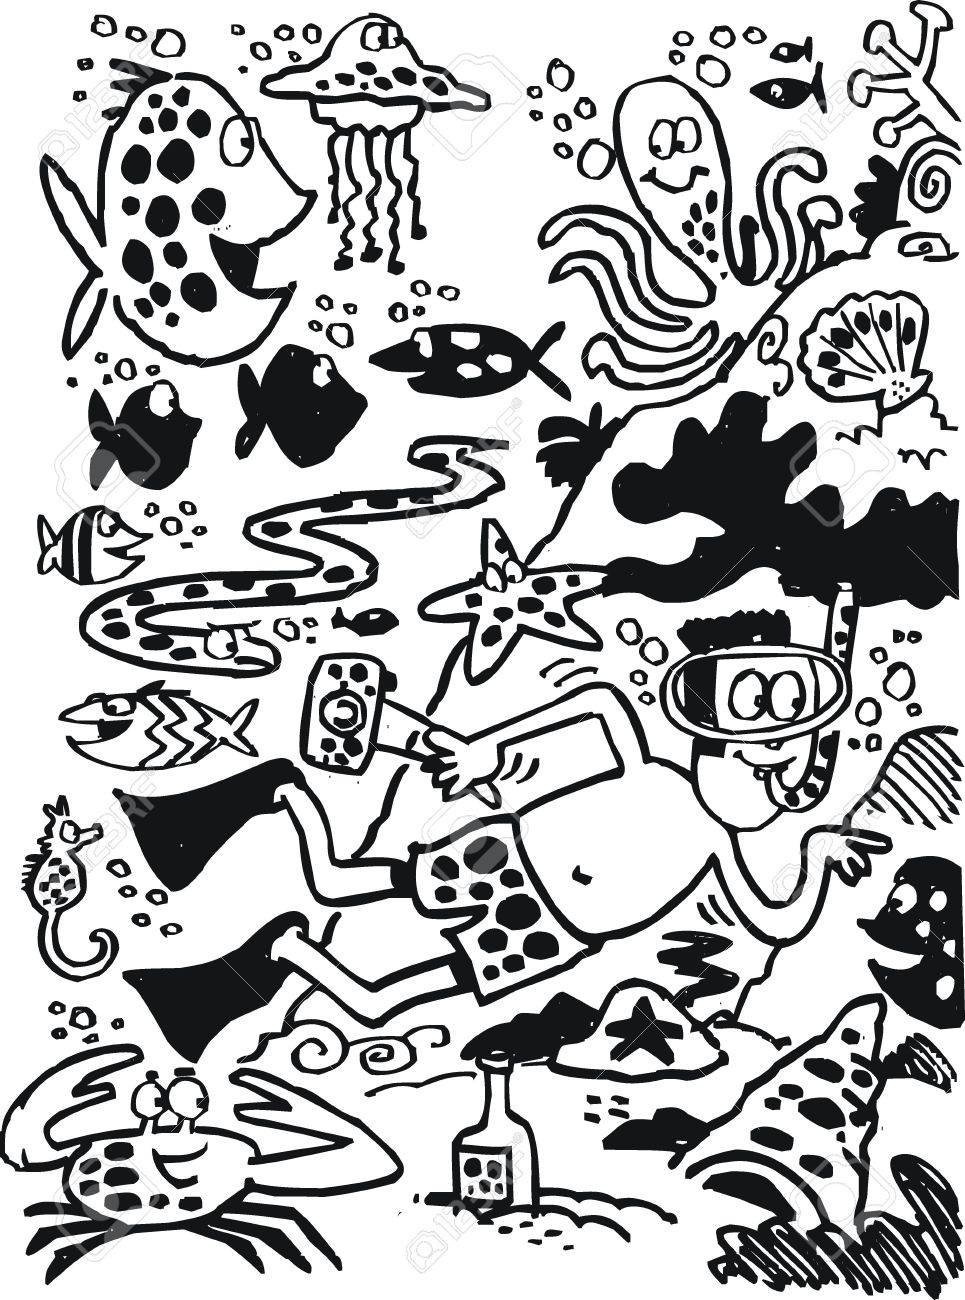 965x1300 Black And White Cartoon Of Underwater Scene. Royalty Free Cliparts